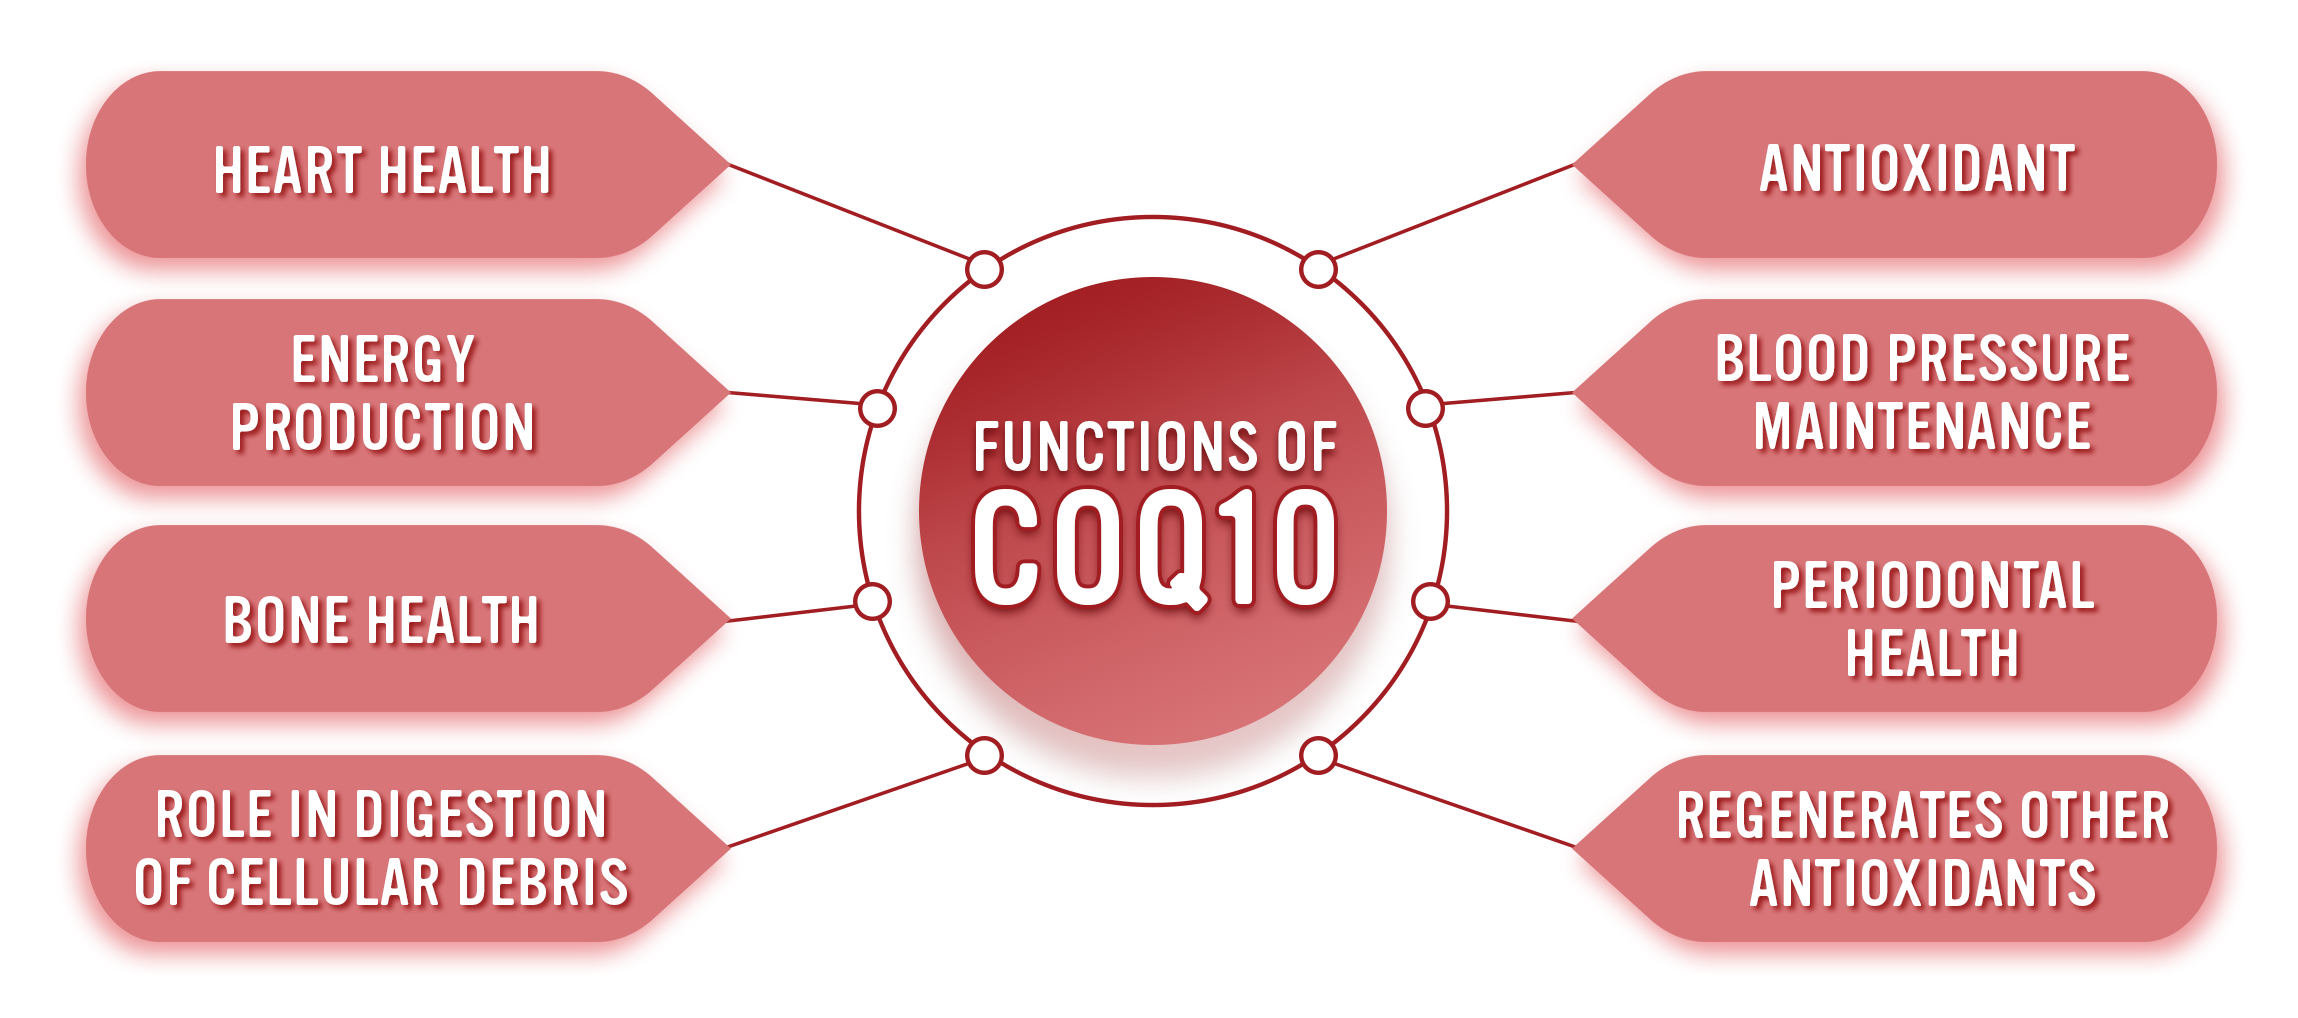 Functions of CoEnzyme Q10